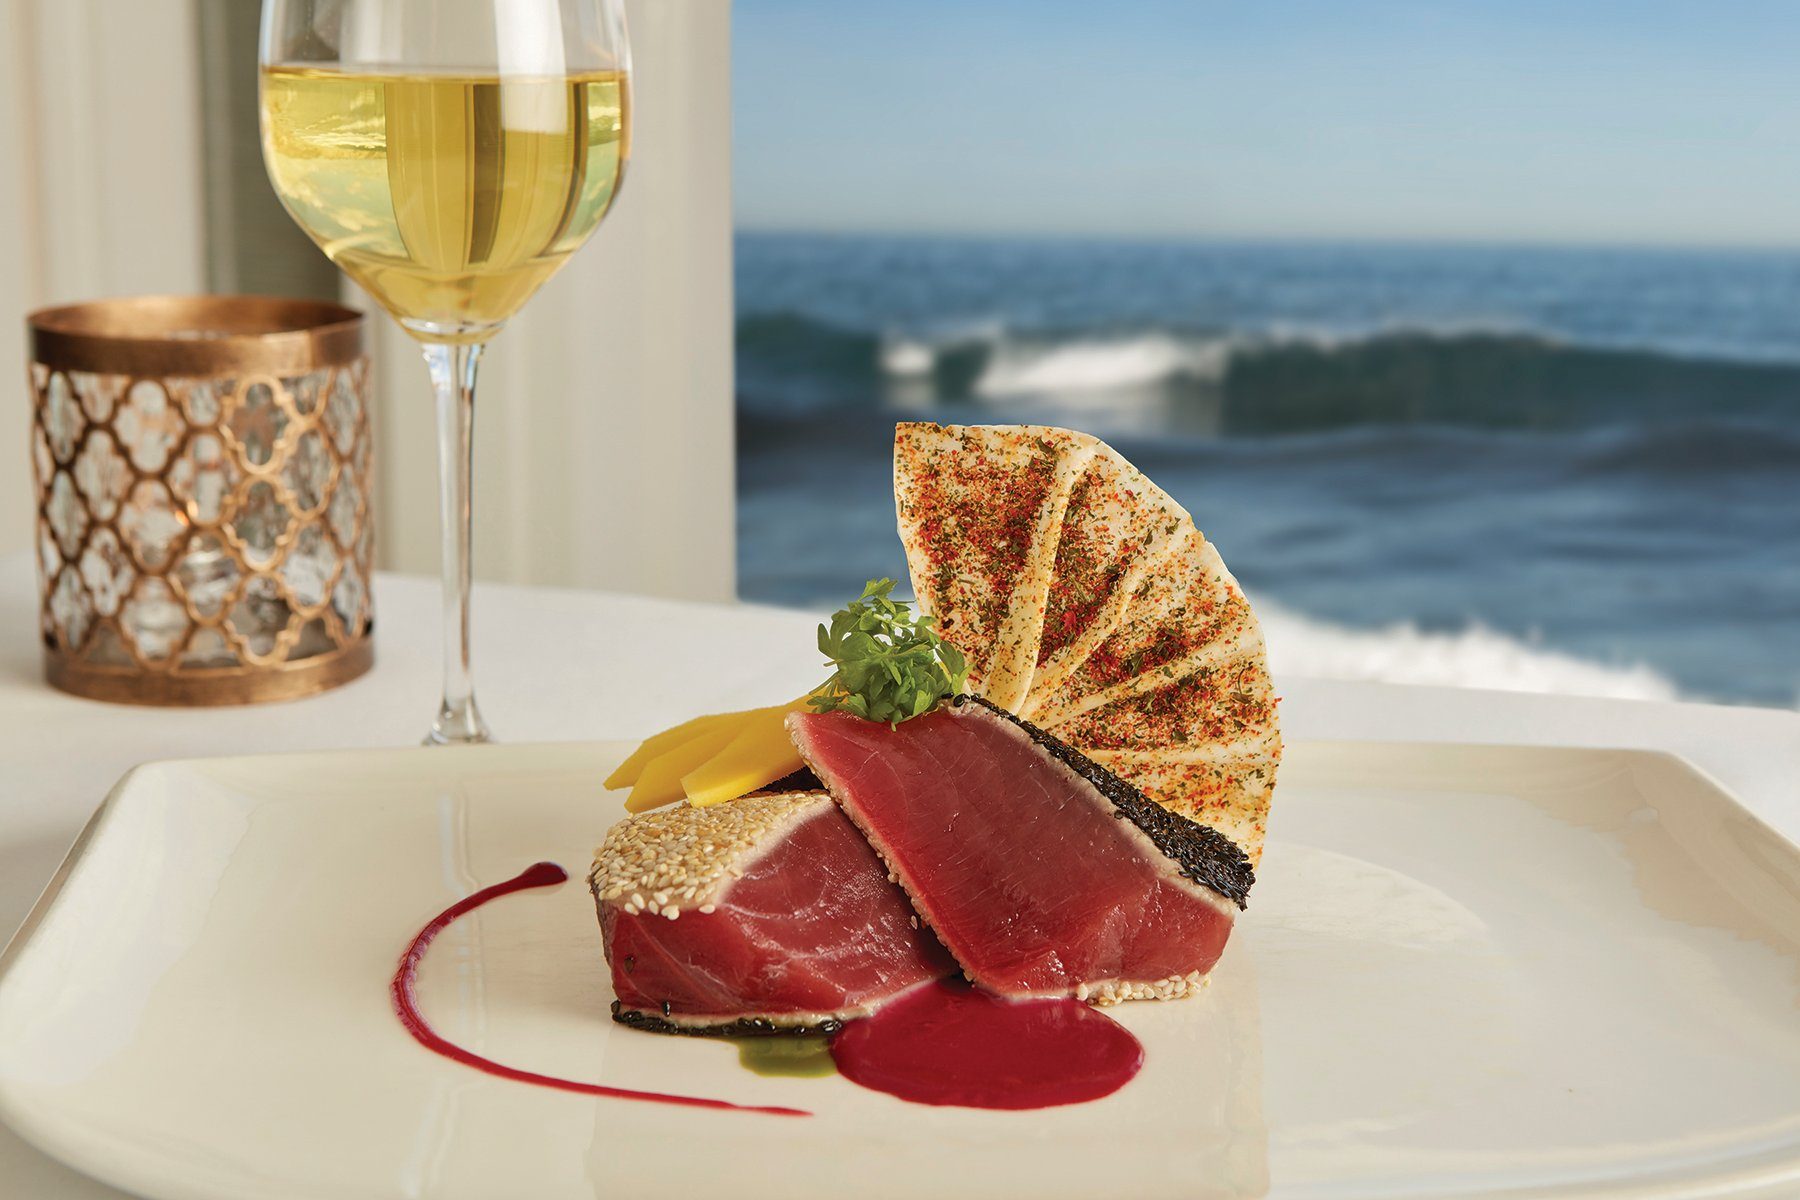 Seared ahi and a glass of white wine against the window with the ocean behind.